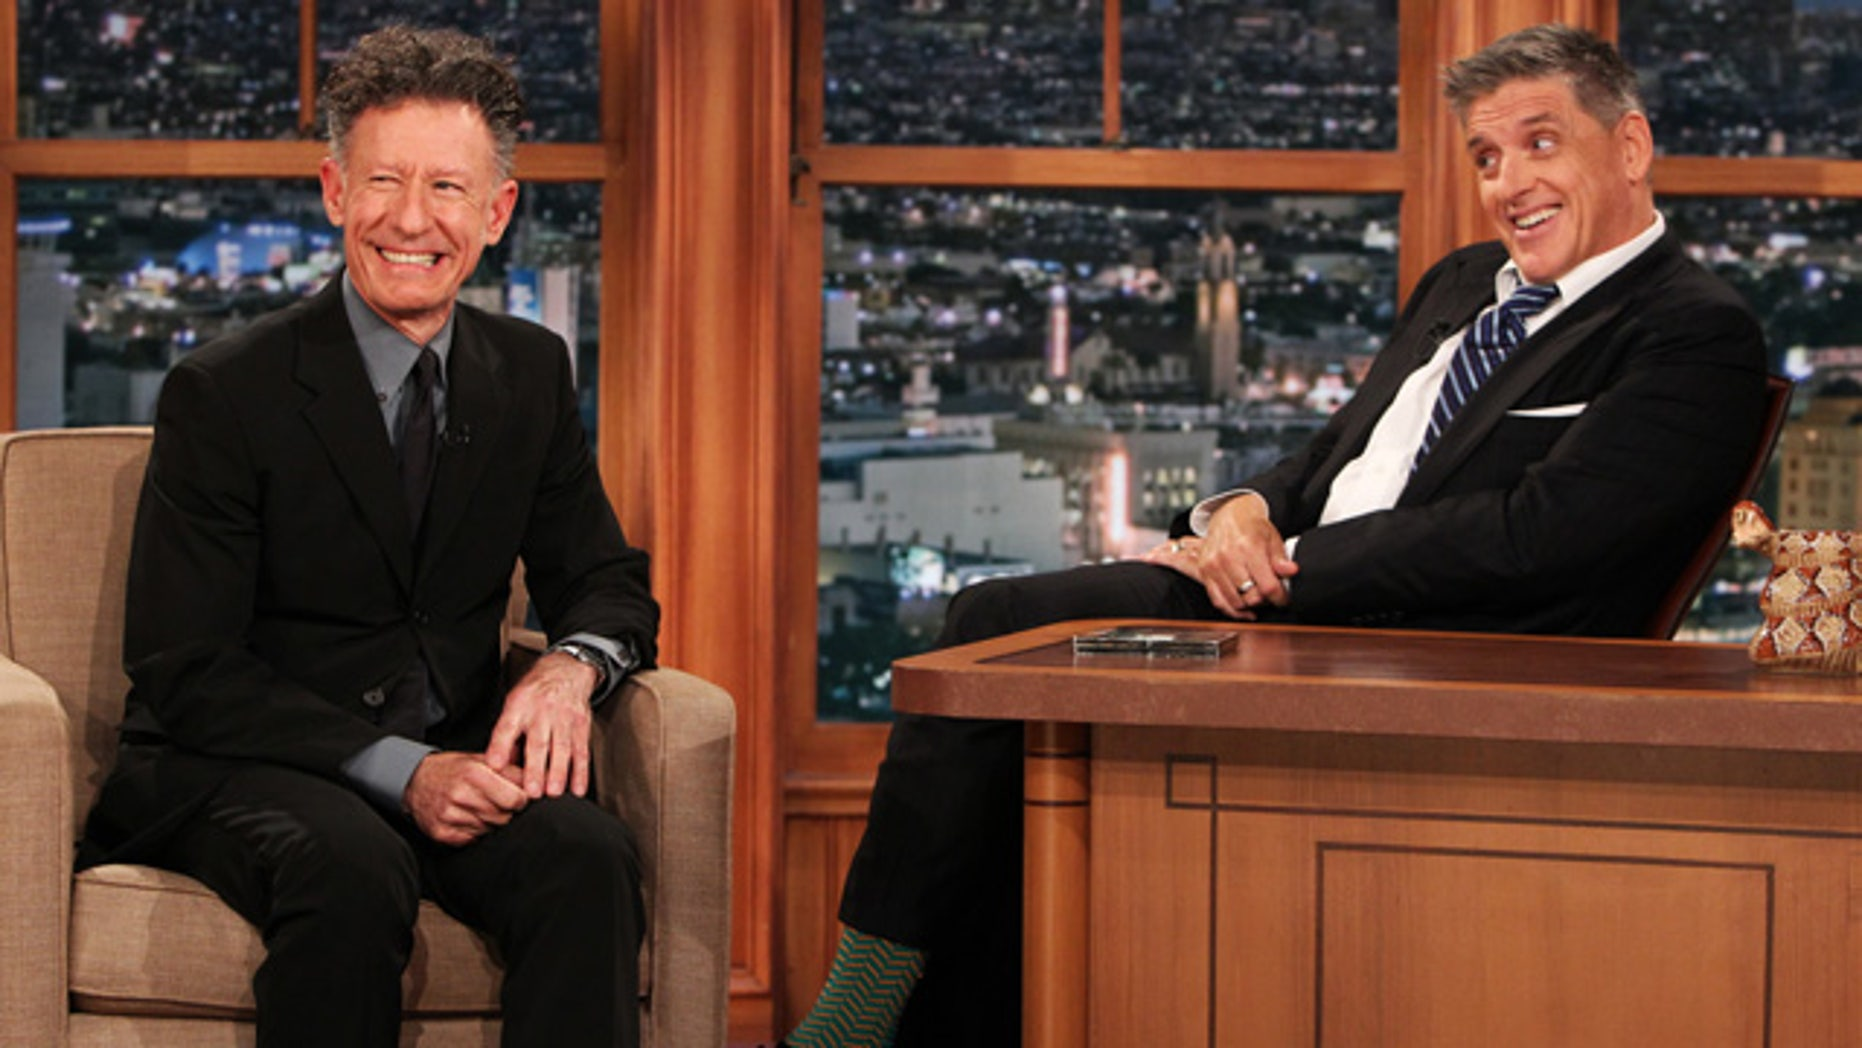 April 23, 2014: This photo released by CBS shows Lyle Lovett, left, and Craig Ferguson on 'The Late Late Show with Craig Ferguson' on the CBS Television Network. Ferguson says he is stepping down as host of the show this year. CBS said that Ferguson made the announcement to his studio audience. (AP Photo/CBS, Sonja Flemming)